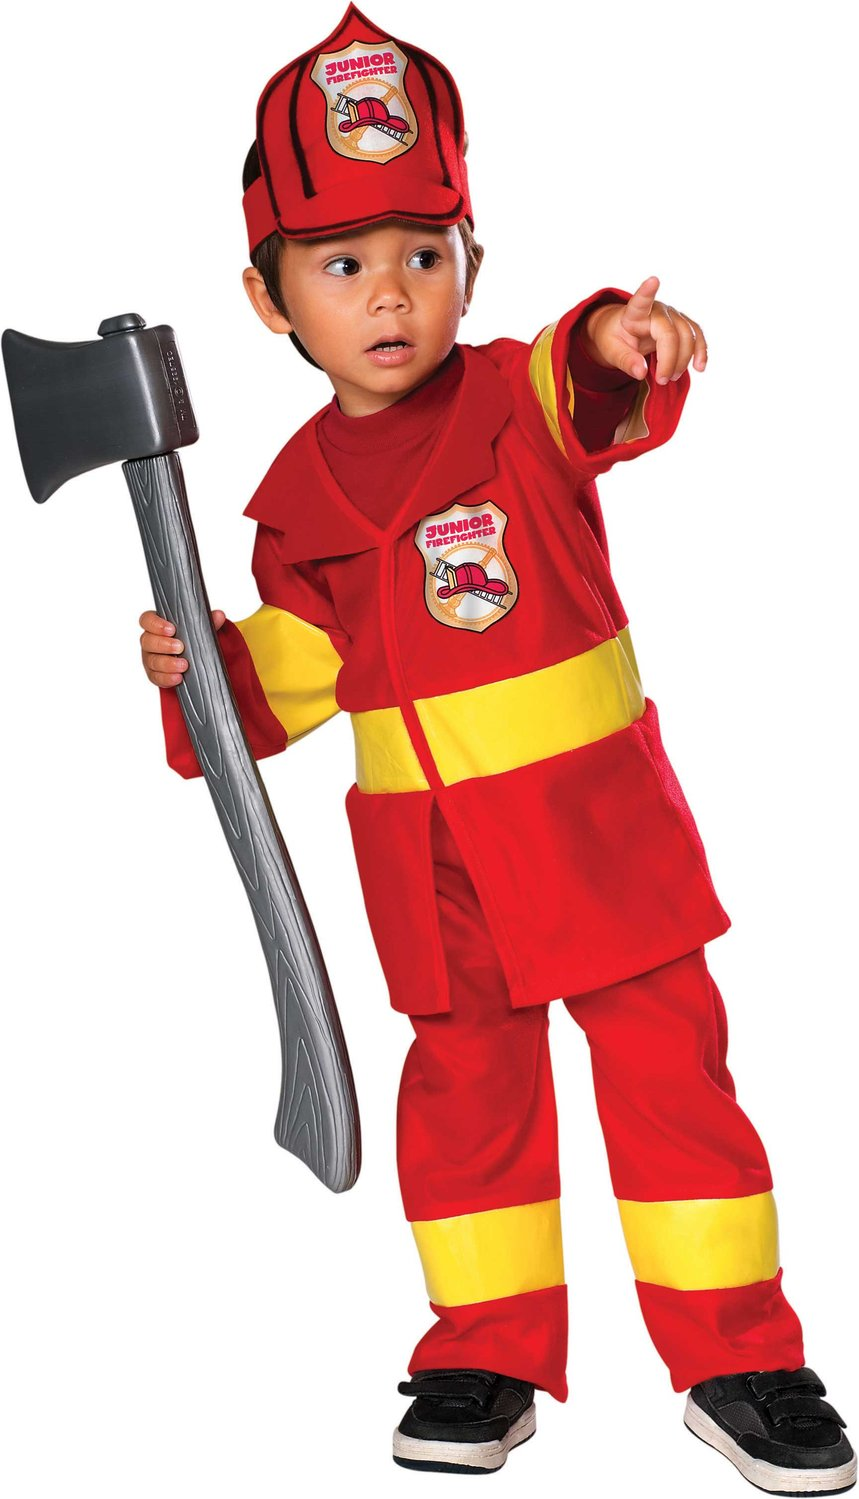 Make sure this fits by entering your model number.; Dress-up-and-play set with everything a child needs to look the part, plus exciting accessories to spur imaginative play Includes jacket, helmet, badge, fire extinguisher, bullhorn and reusable name tagReviews: K.